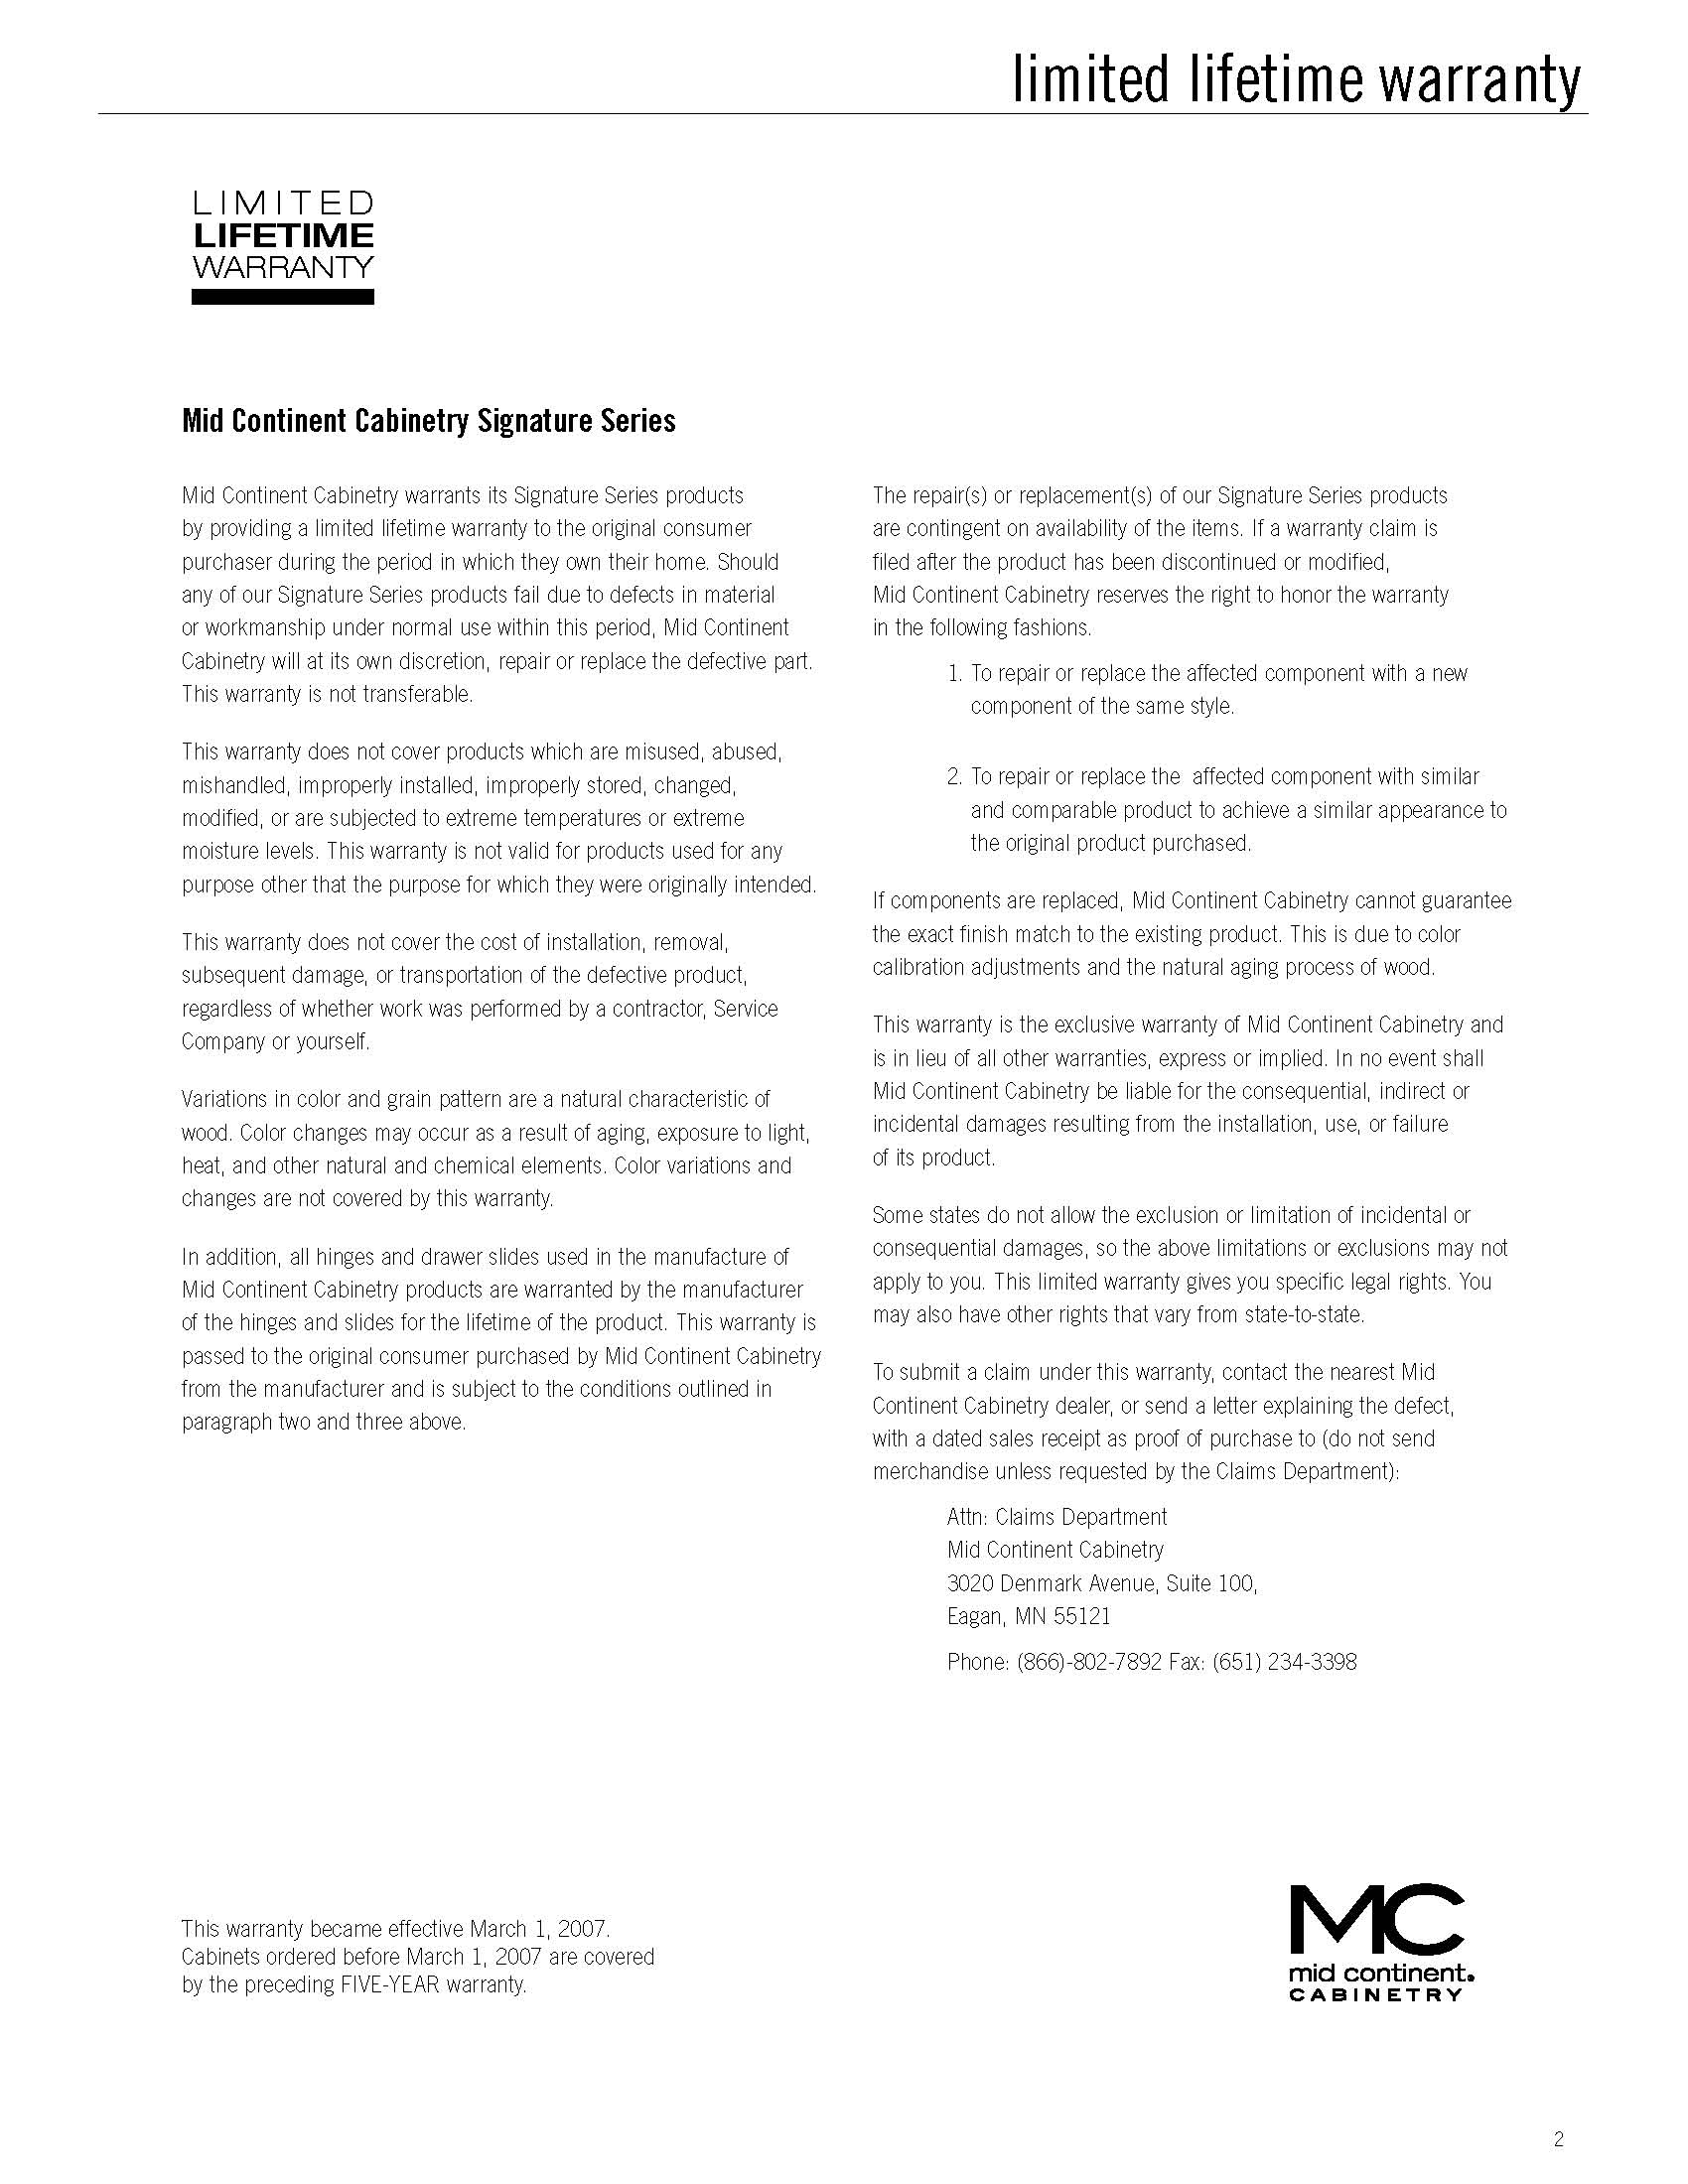 Mid Continent Cabinetry Warranty